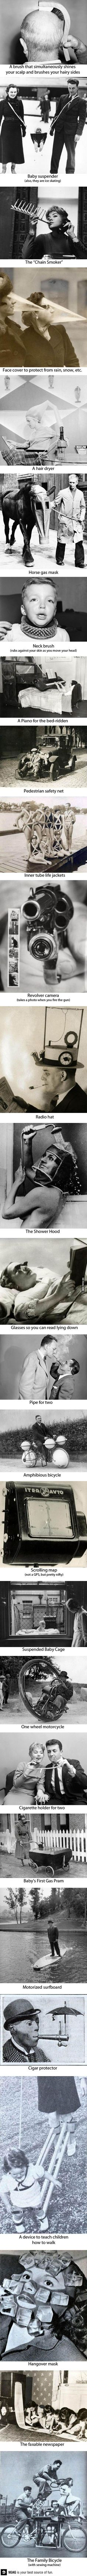 27 insane inventions from the past